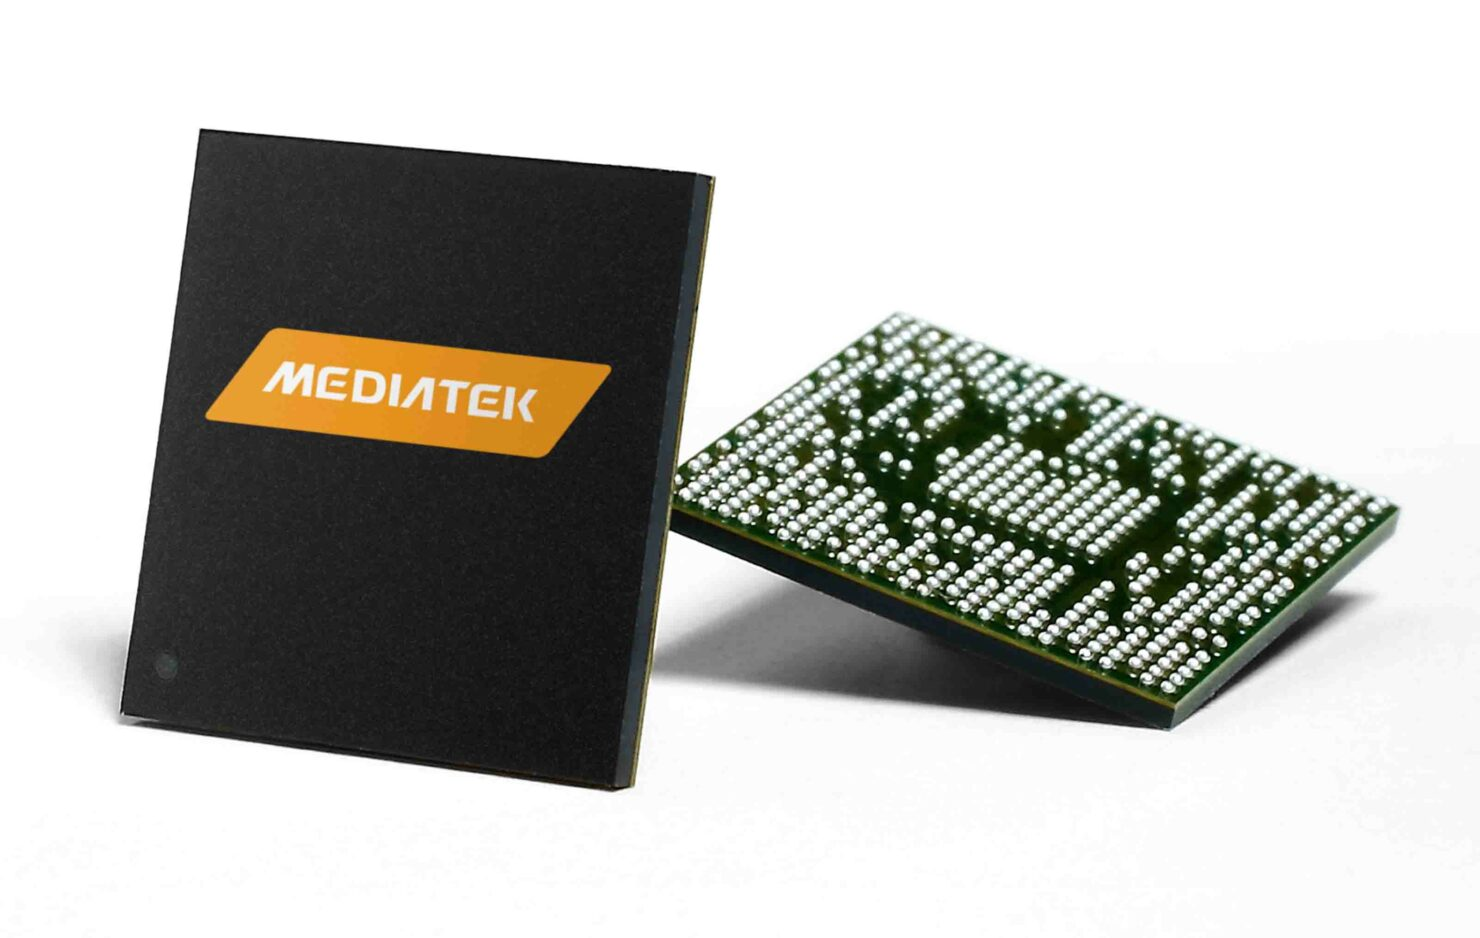 MediaTek Announces Its Helio X30, Helio P20 and Helio P25 SoCs – Here Are the Details You Wished to Know